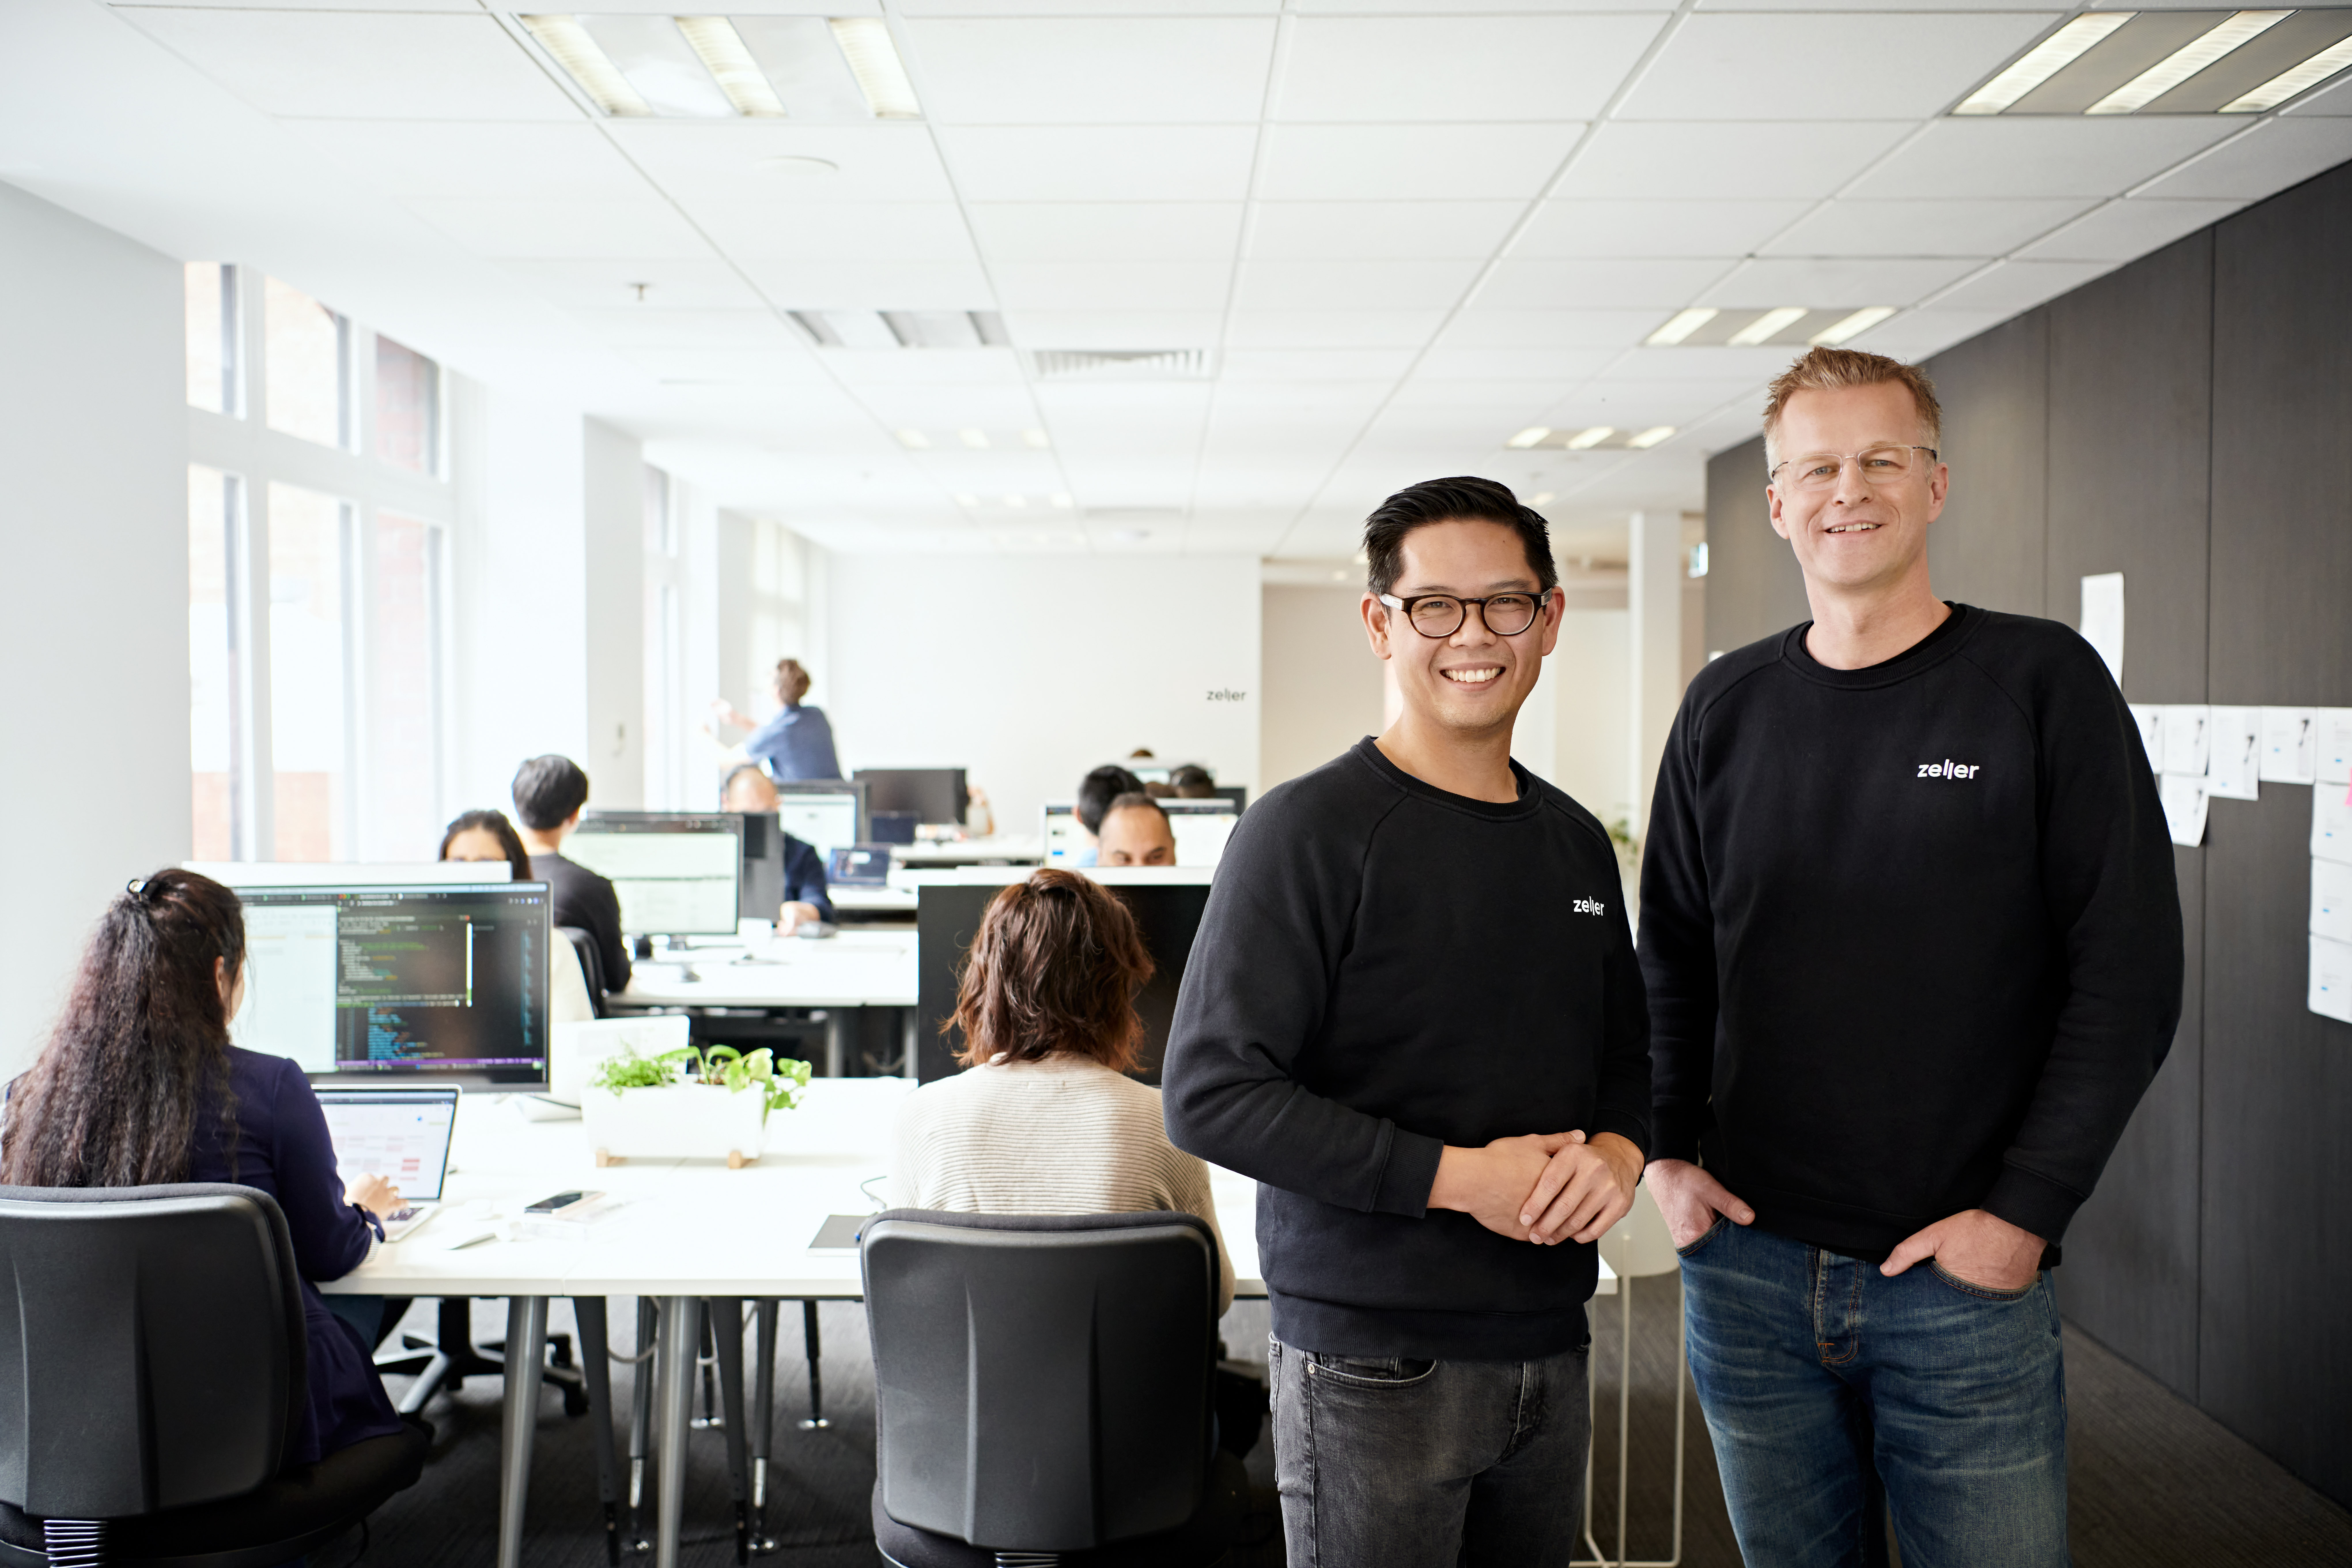 A photo of Dominic Yap, chief operating officer and co-founder, and Ben Pfisterer, chief executive officer and co-founder of Zeller